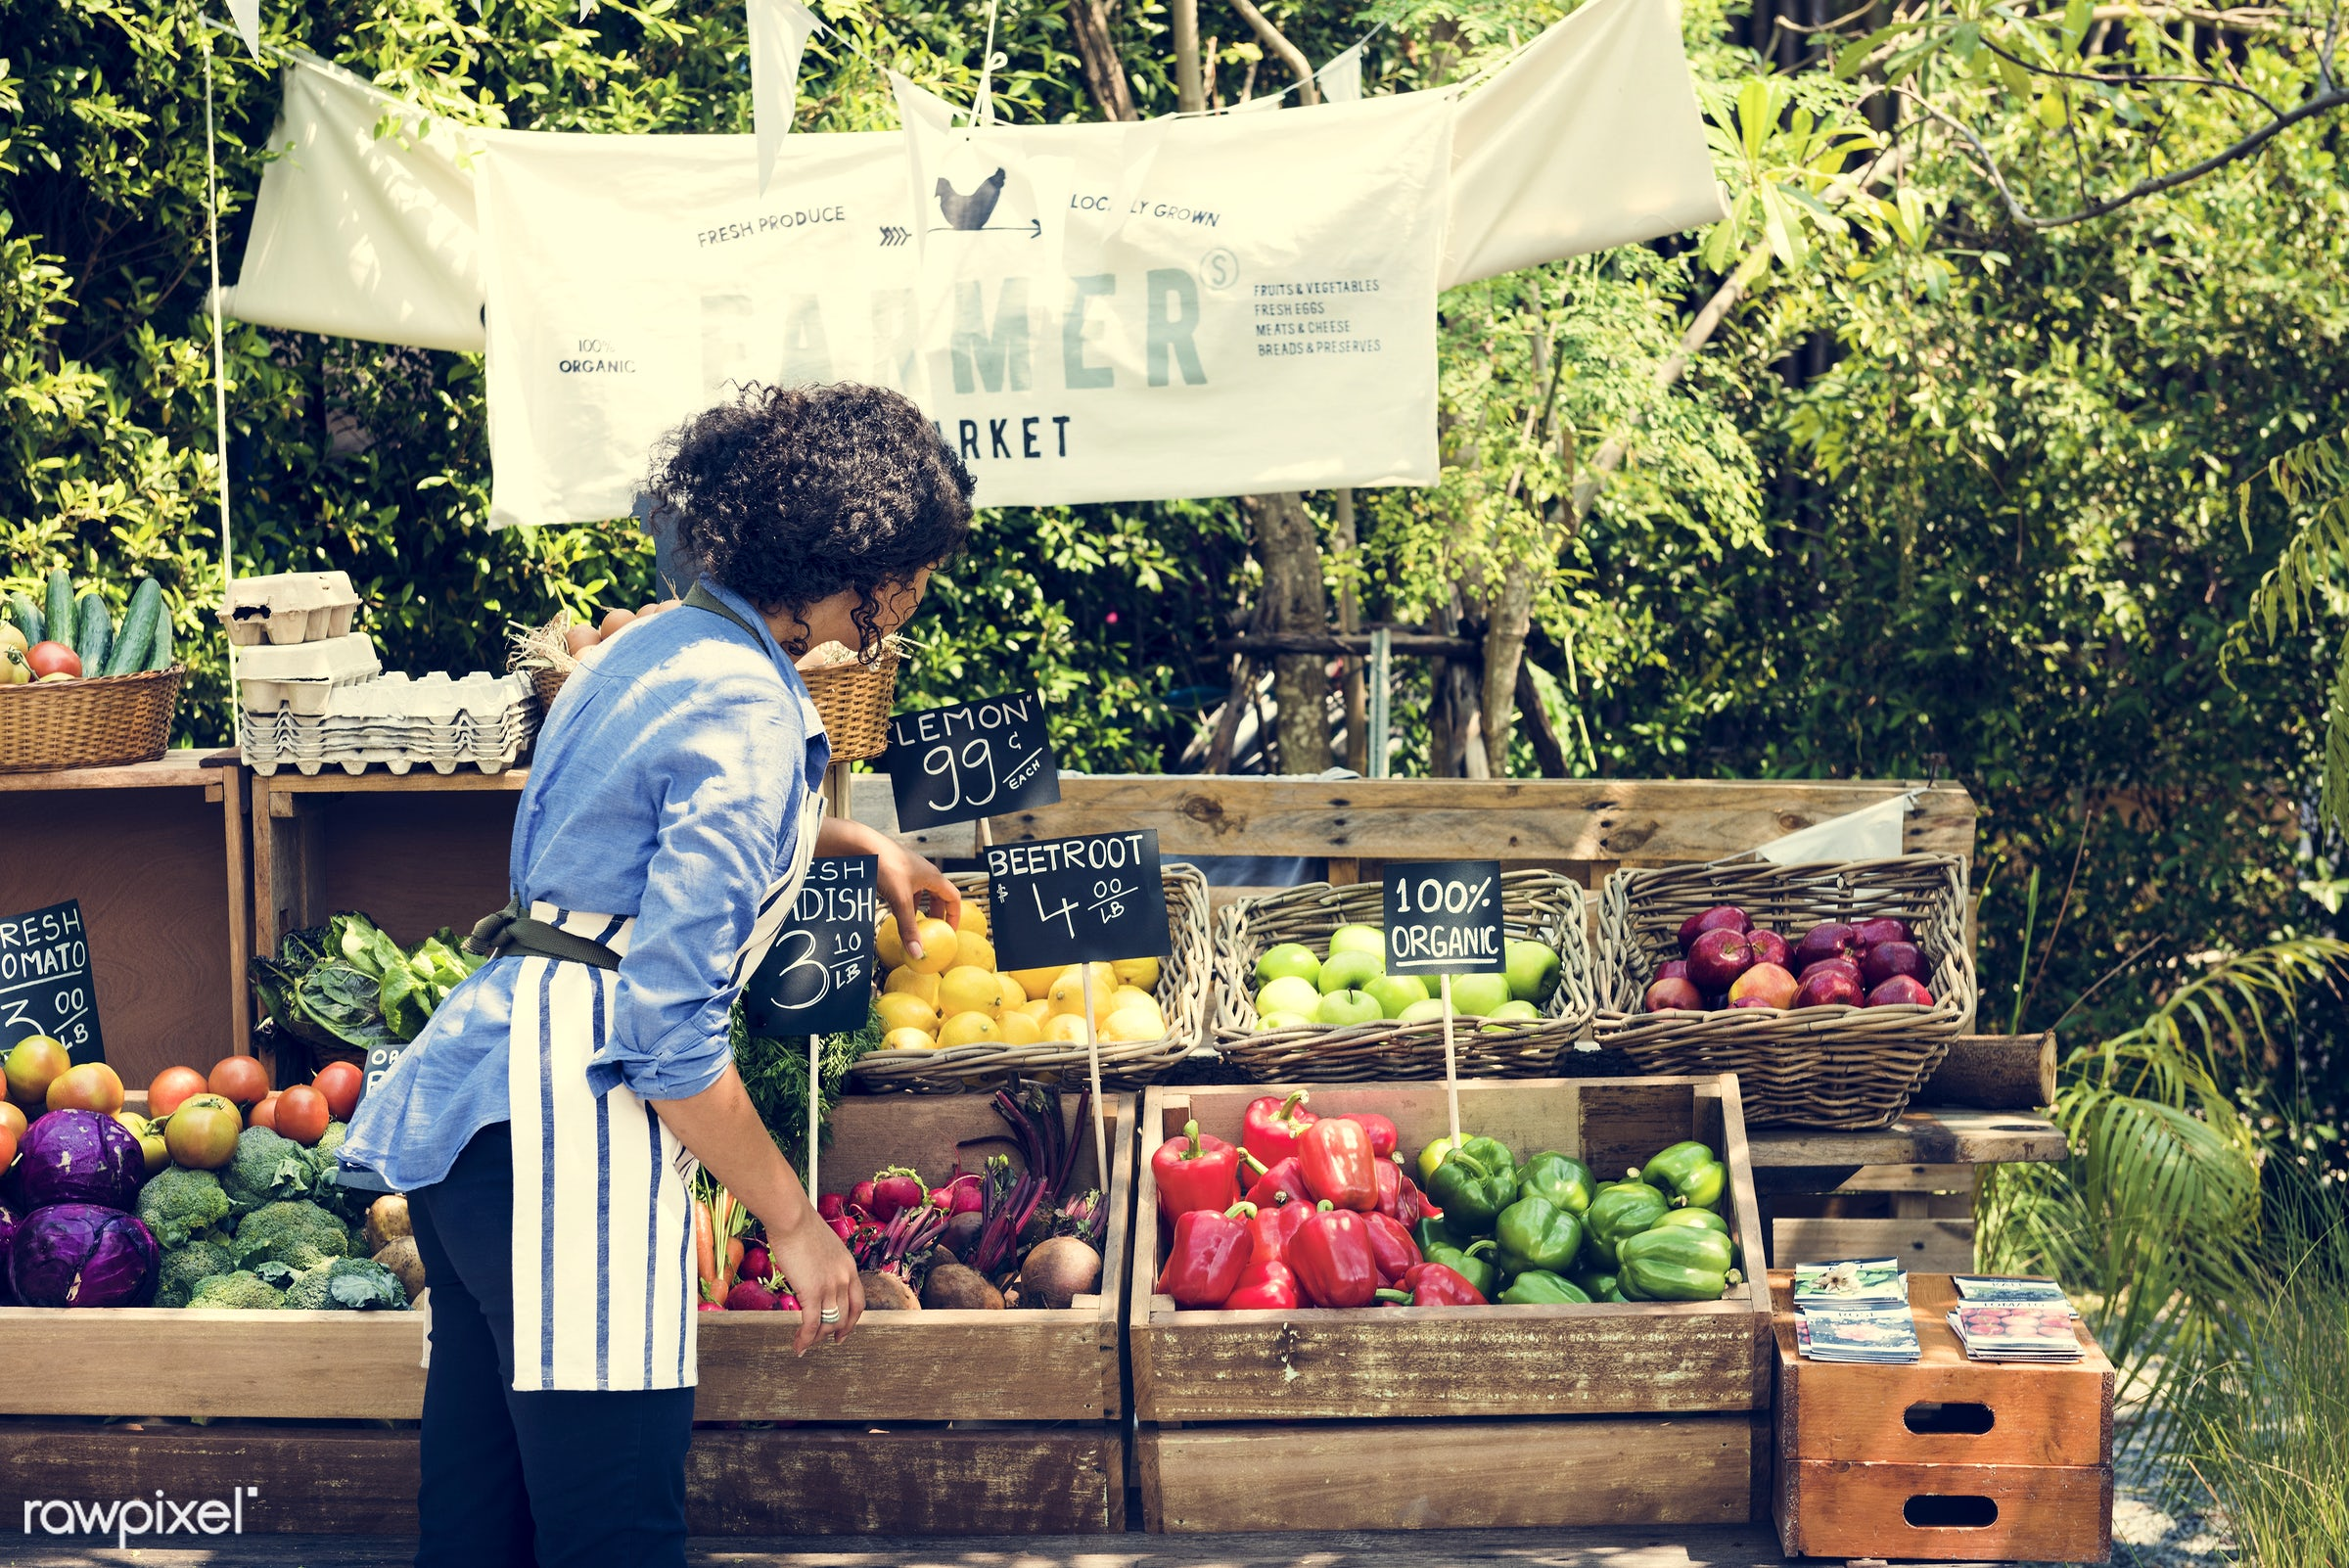 shop, person, stall, consumer, people, farmer, woman, choosing, choose, display, tomatoes, sign, nutrition, price, market,...